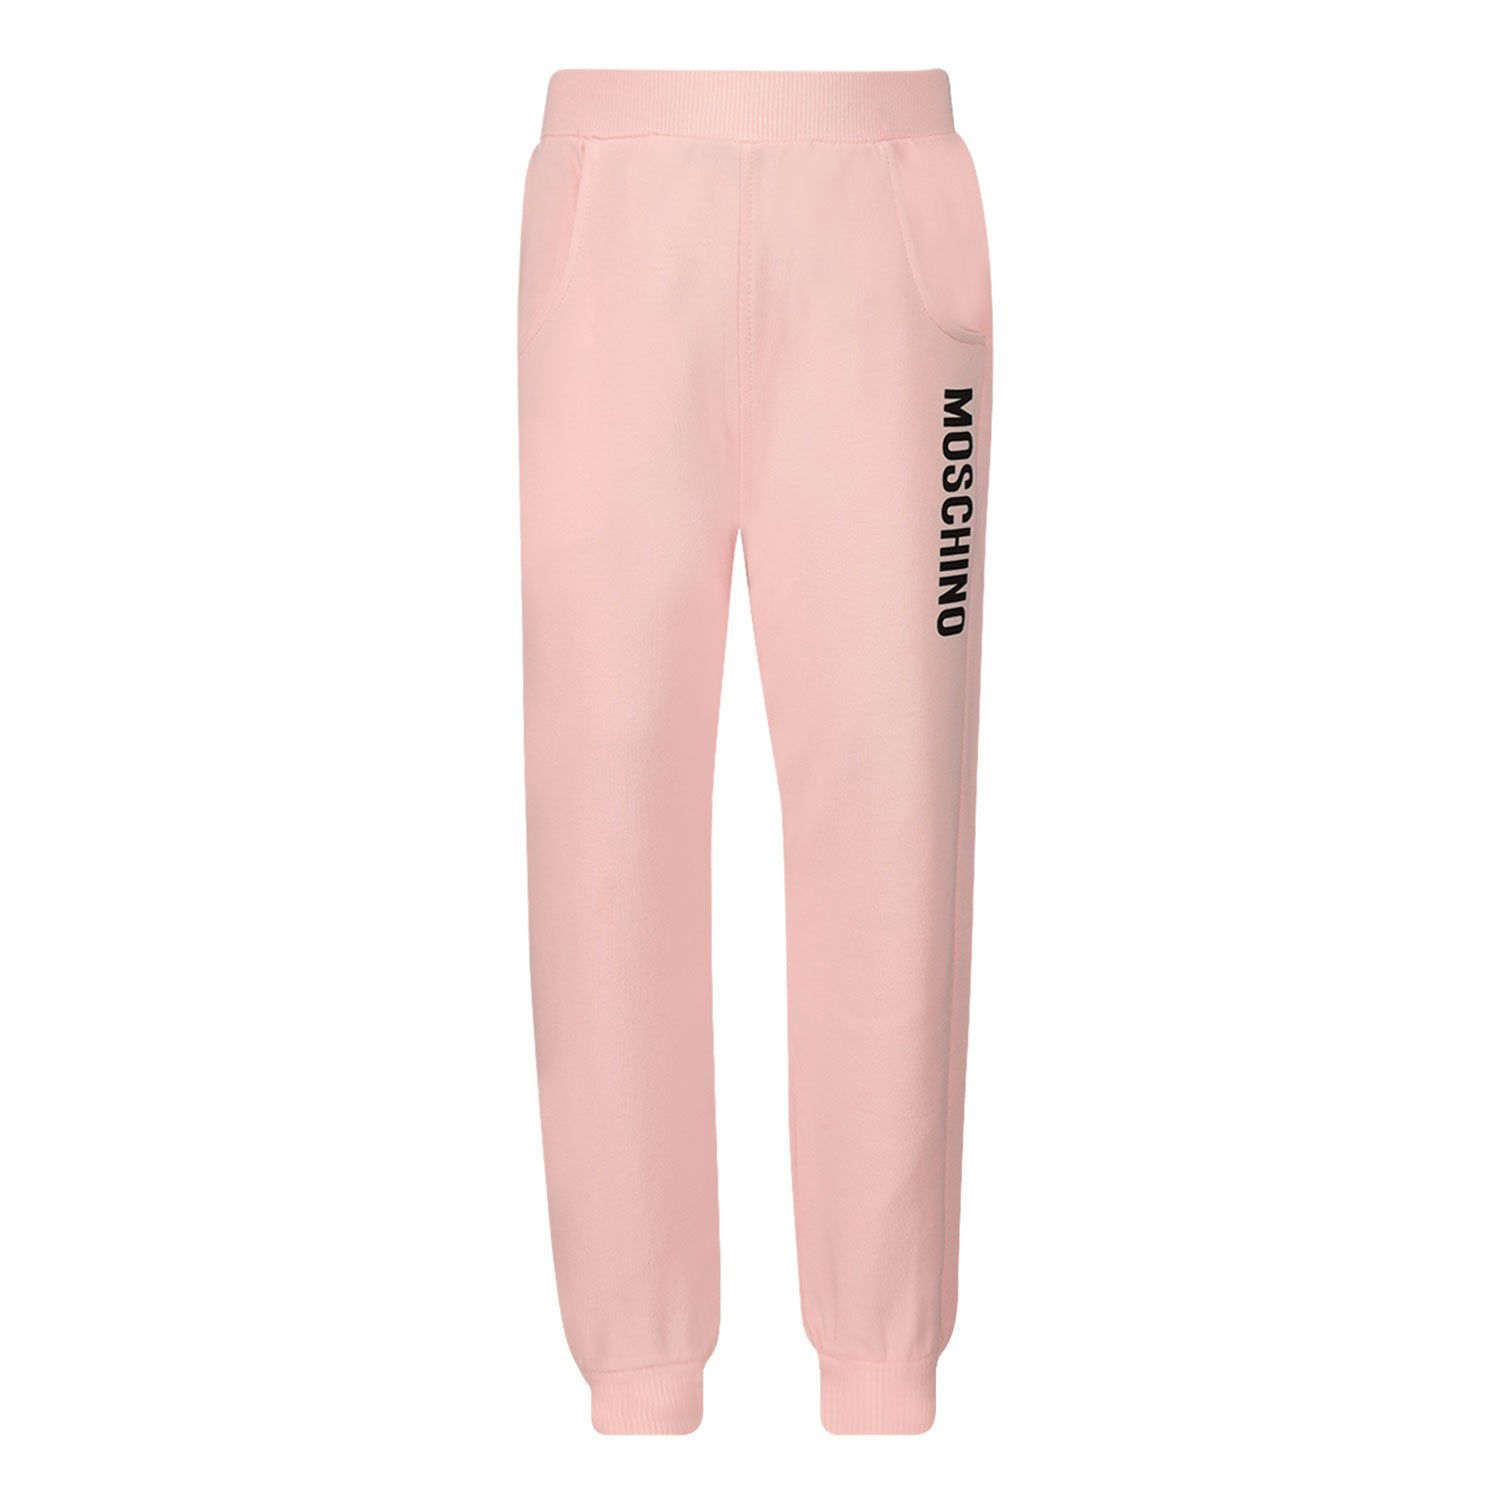 Picture of Moschino MRP023 baby pants light pink